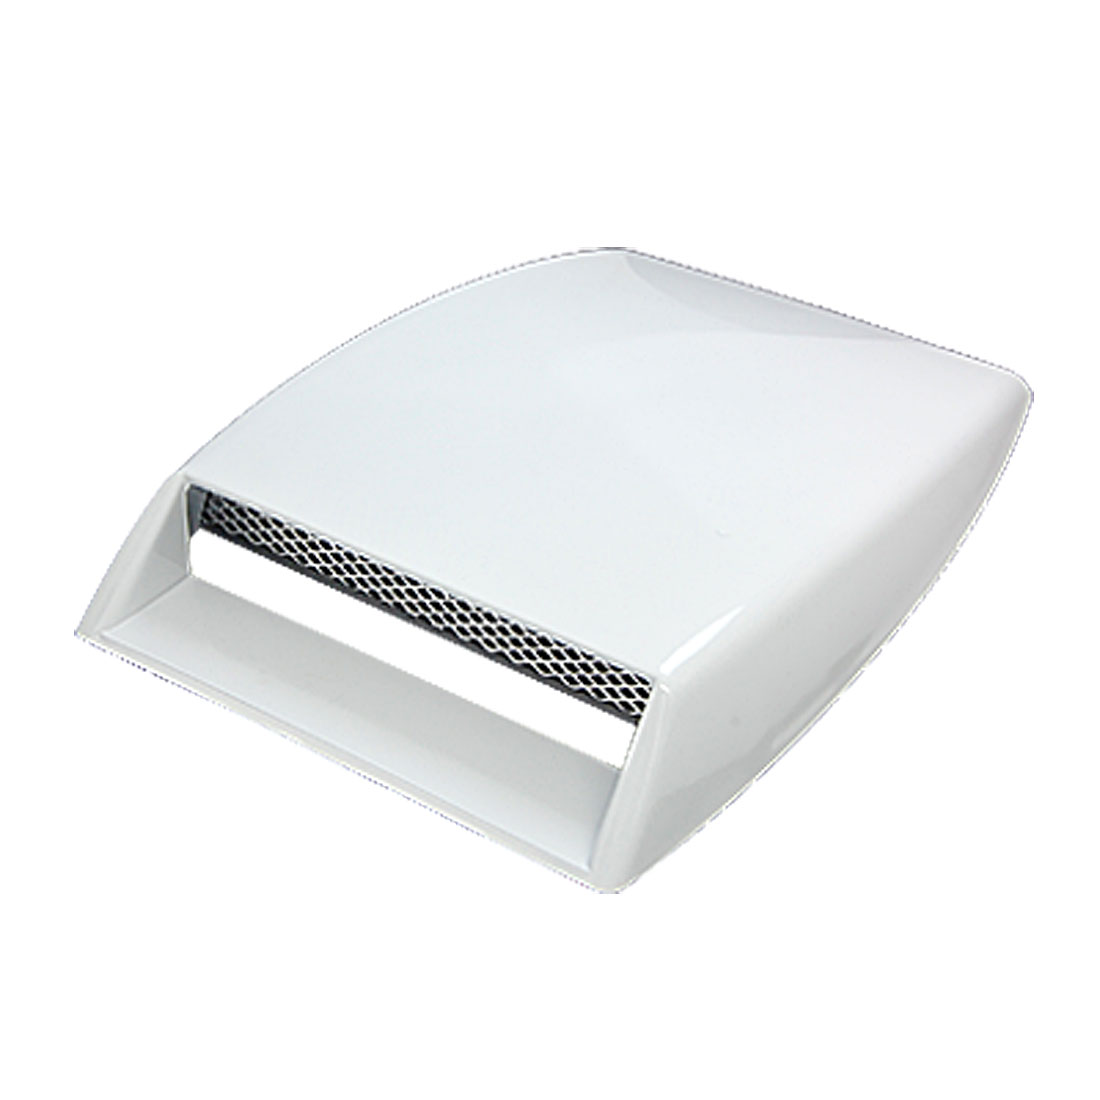 Universal Car Auto Plastic Hood Scoop Air Flow Vent White